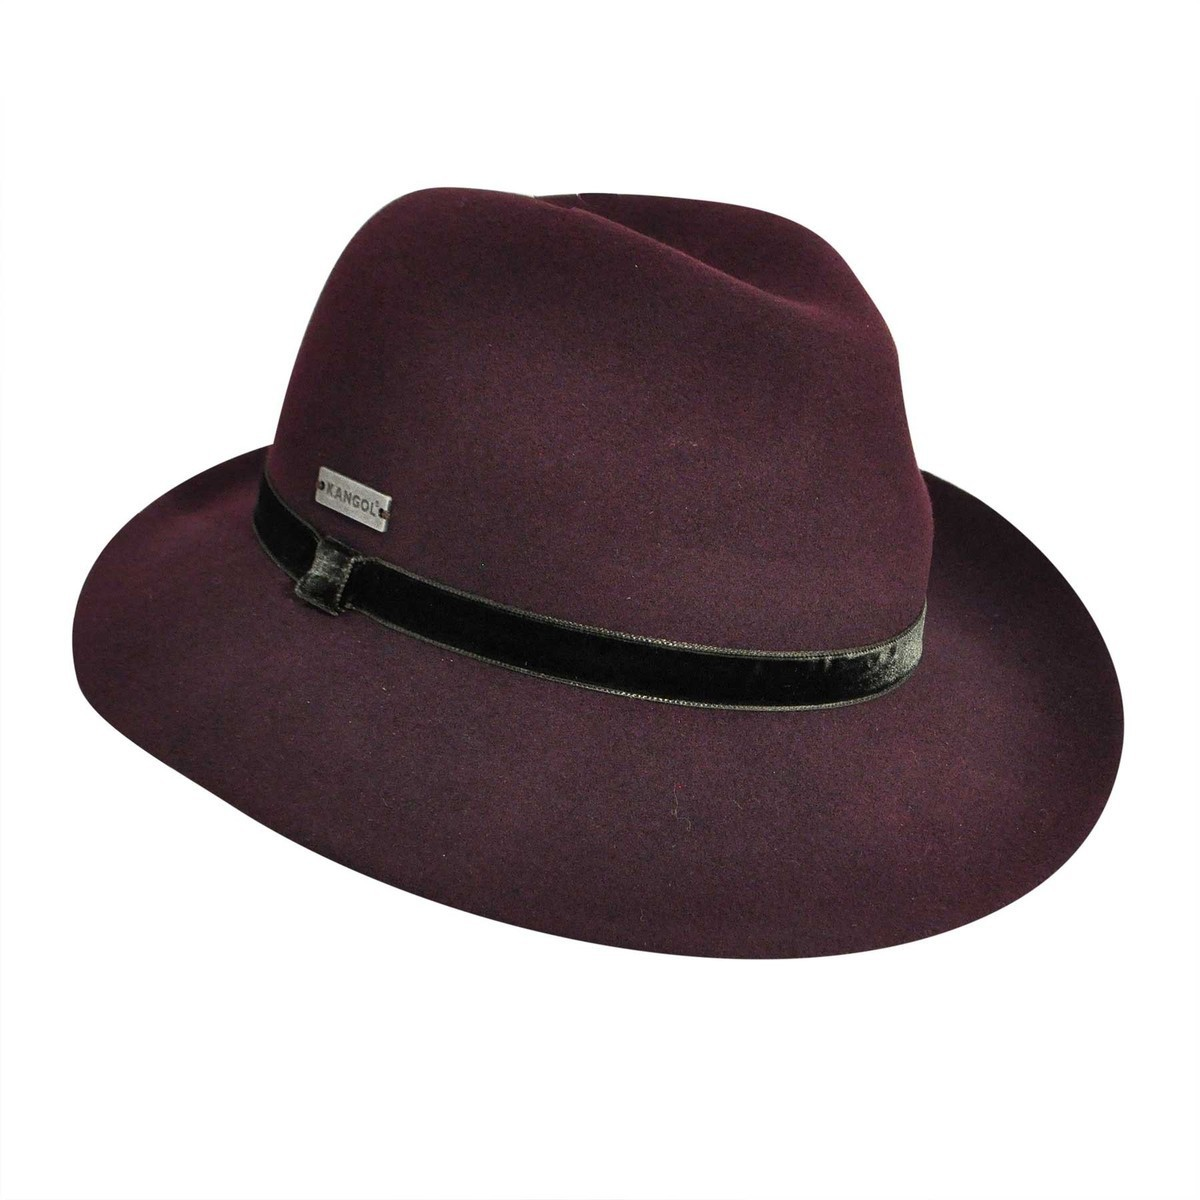 Kangol カンゴール LiteFeltR Vaulted Trilby MULBERRY Trilby 帽子 MULBERRY